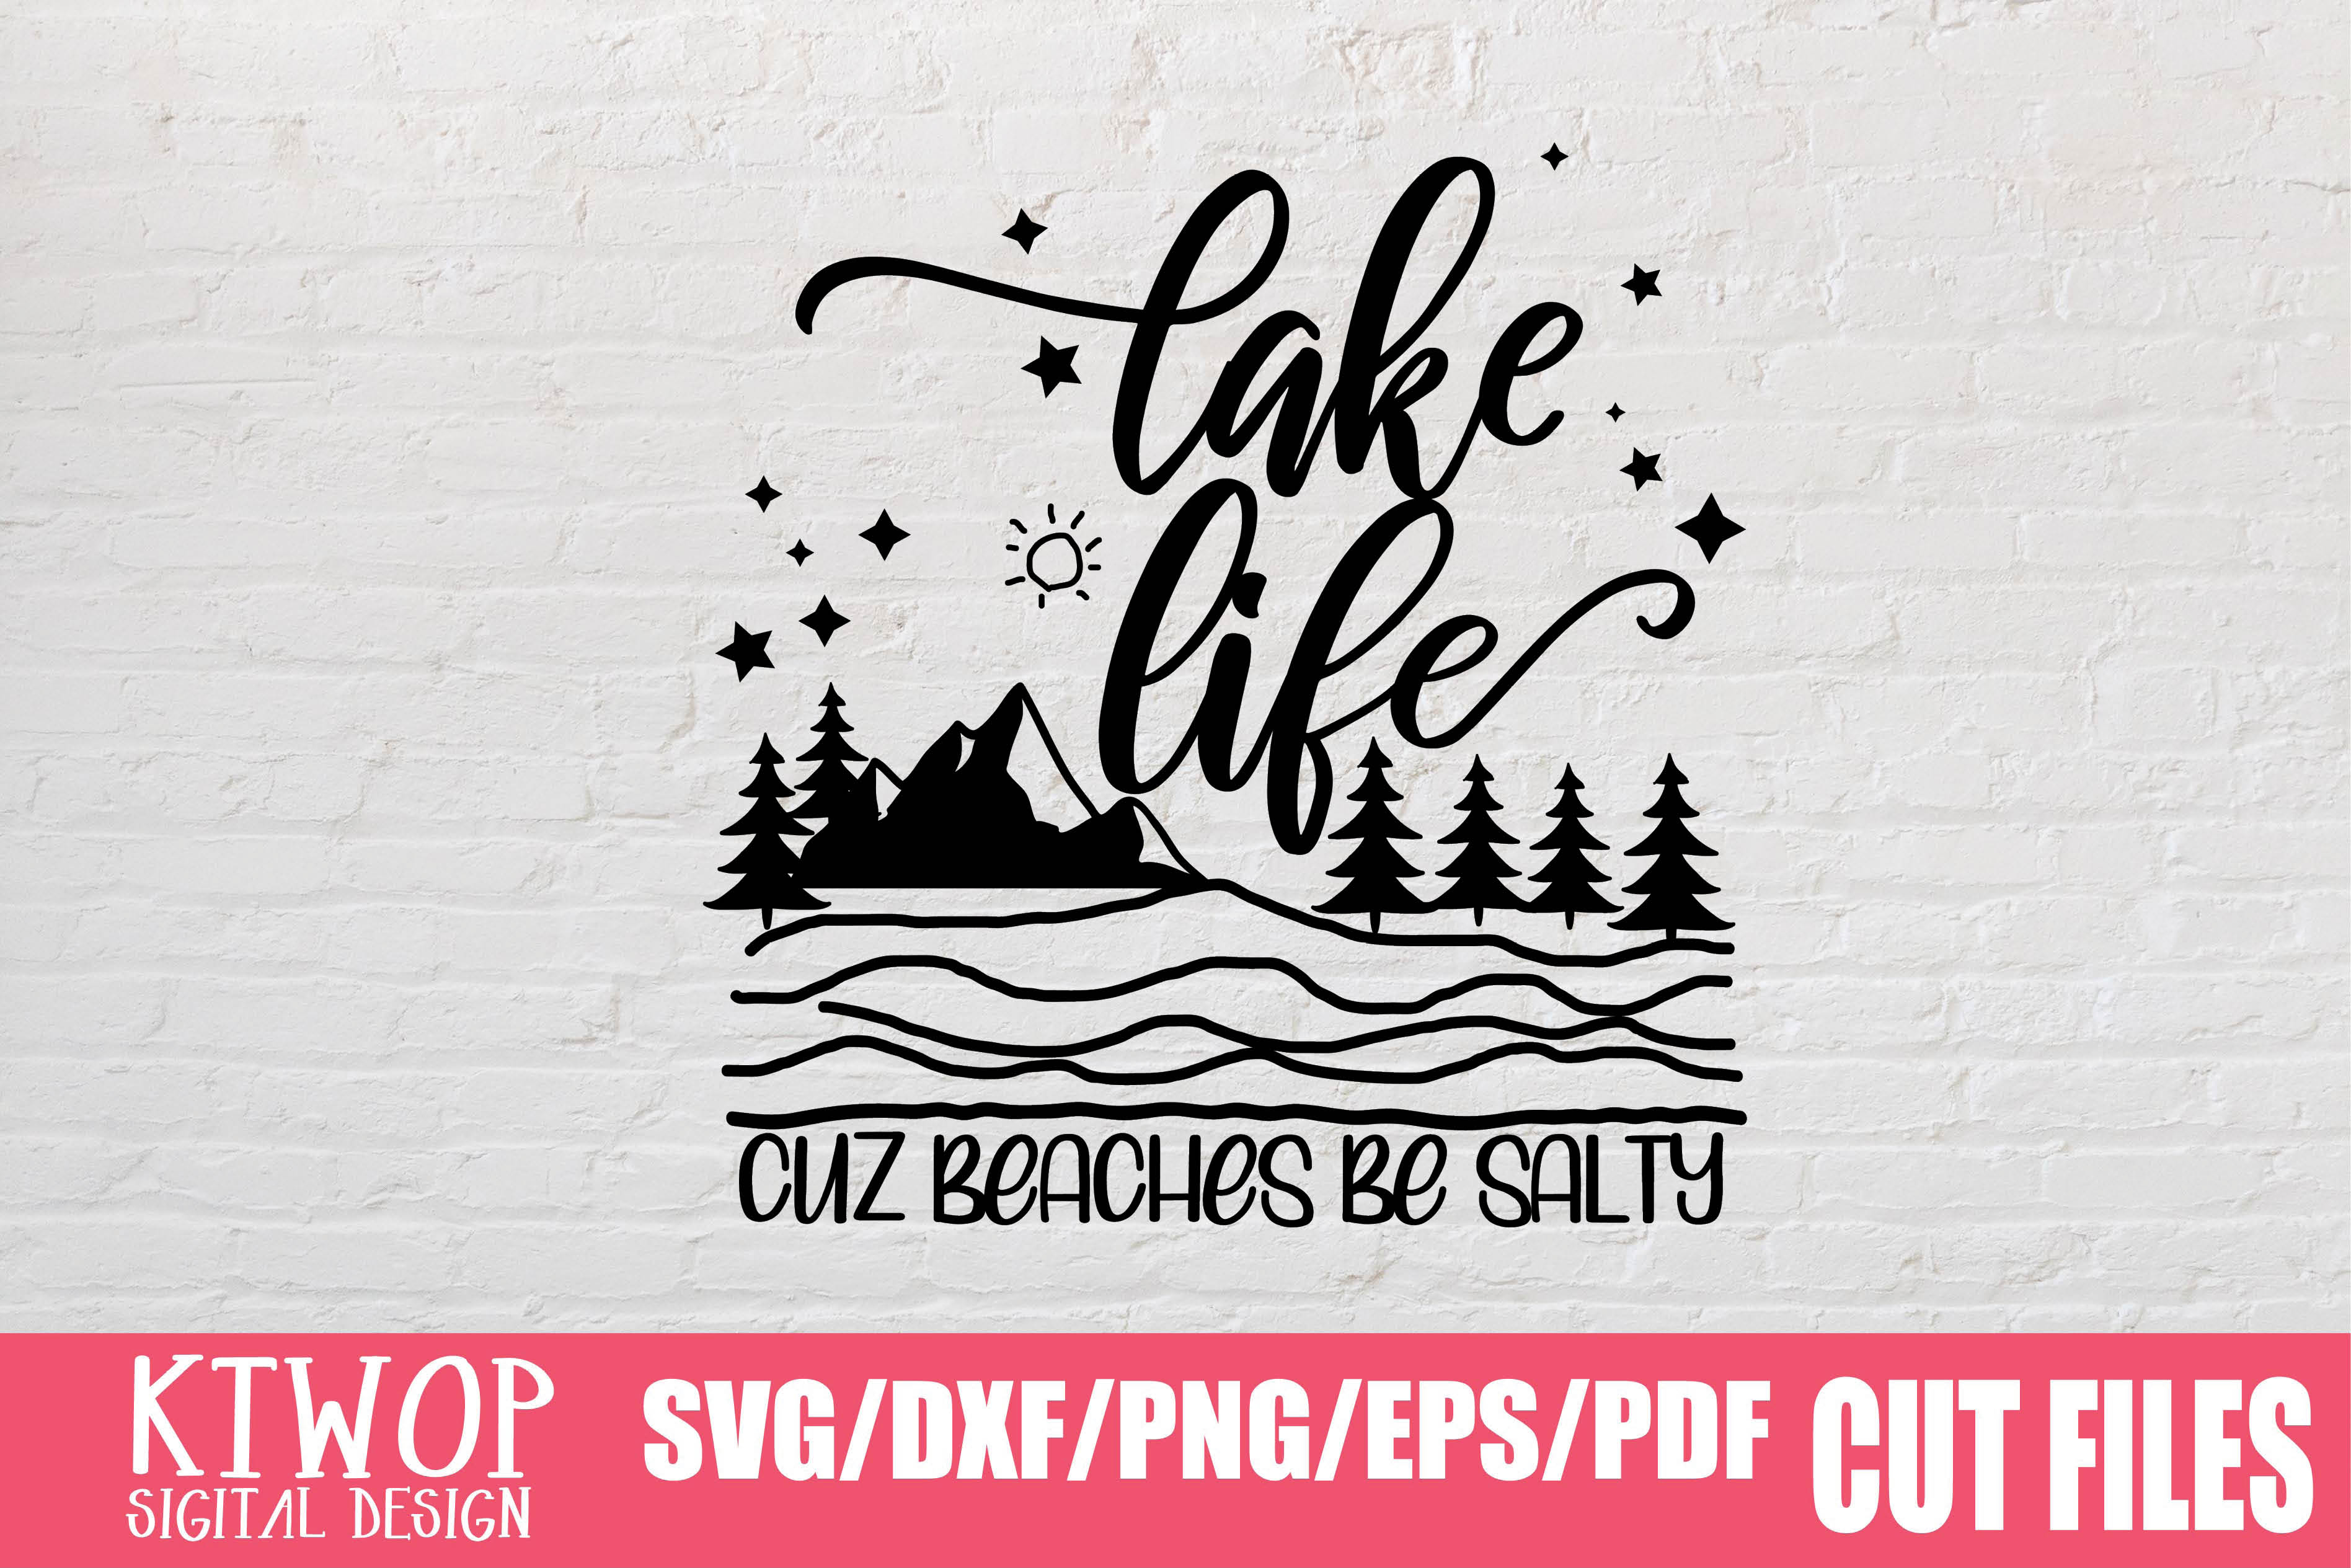 Download Free Lake Life Cuz Beaches Be Salty Graphic By Ktwop Creative Fabrica for Cricut Explore, Silhouette and other cutting machines.